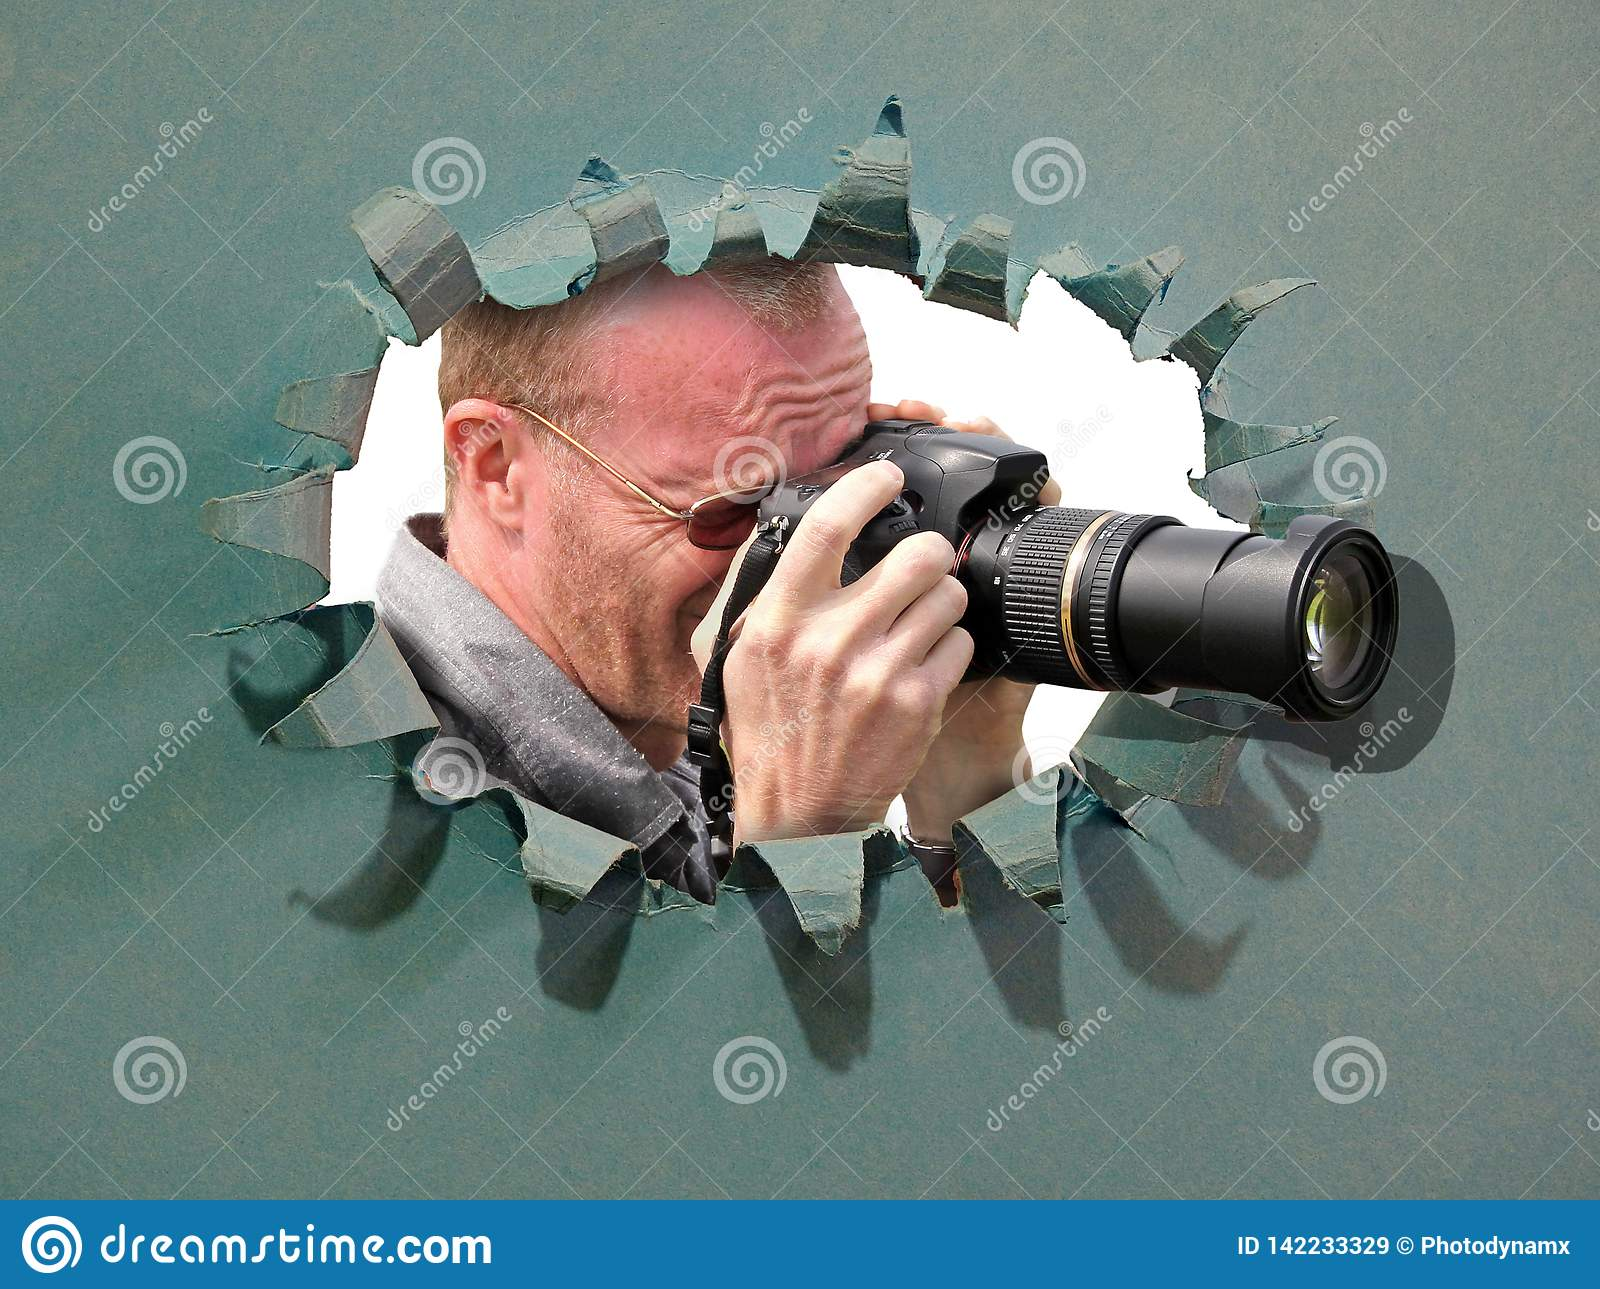 Camera cameraman using lens through hole in card breakthrough tear disguise